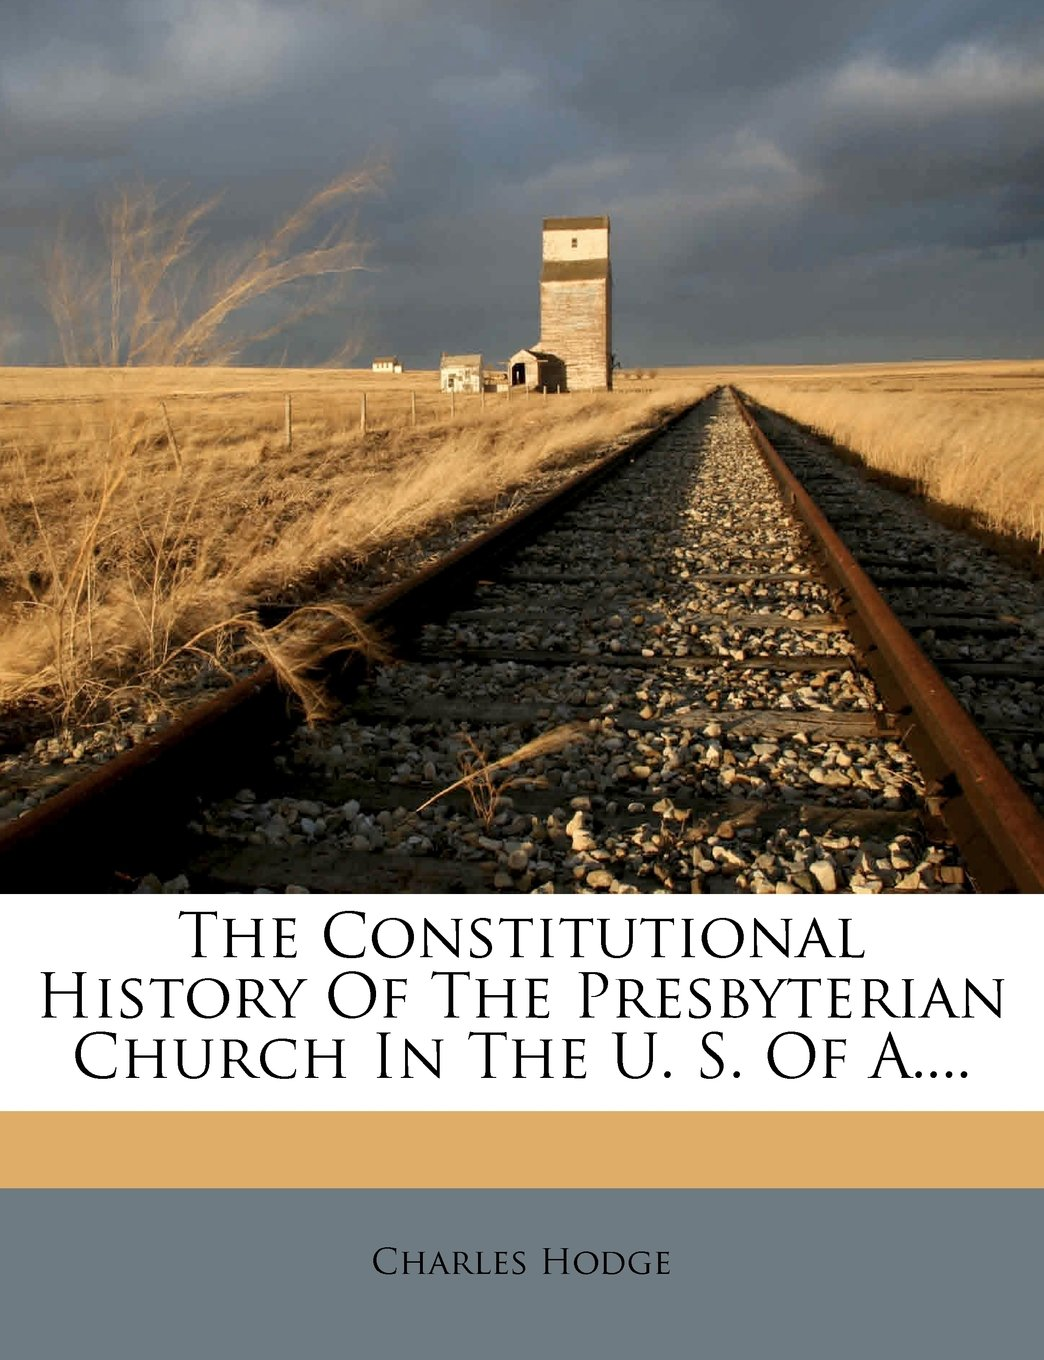 Download The Constitutional History Of The Presbyterian Church In The U. S. Of A.... pdf